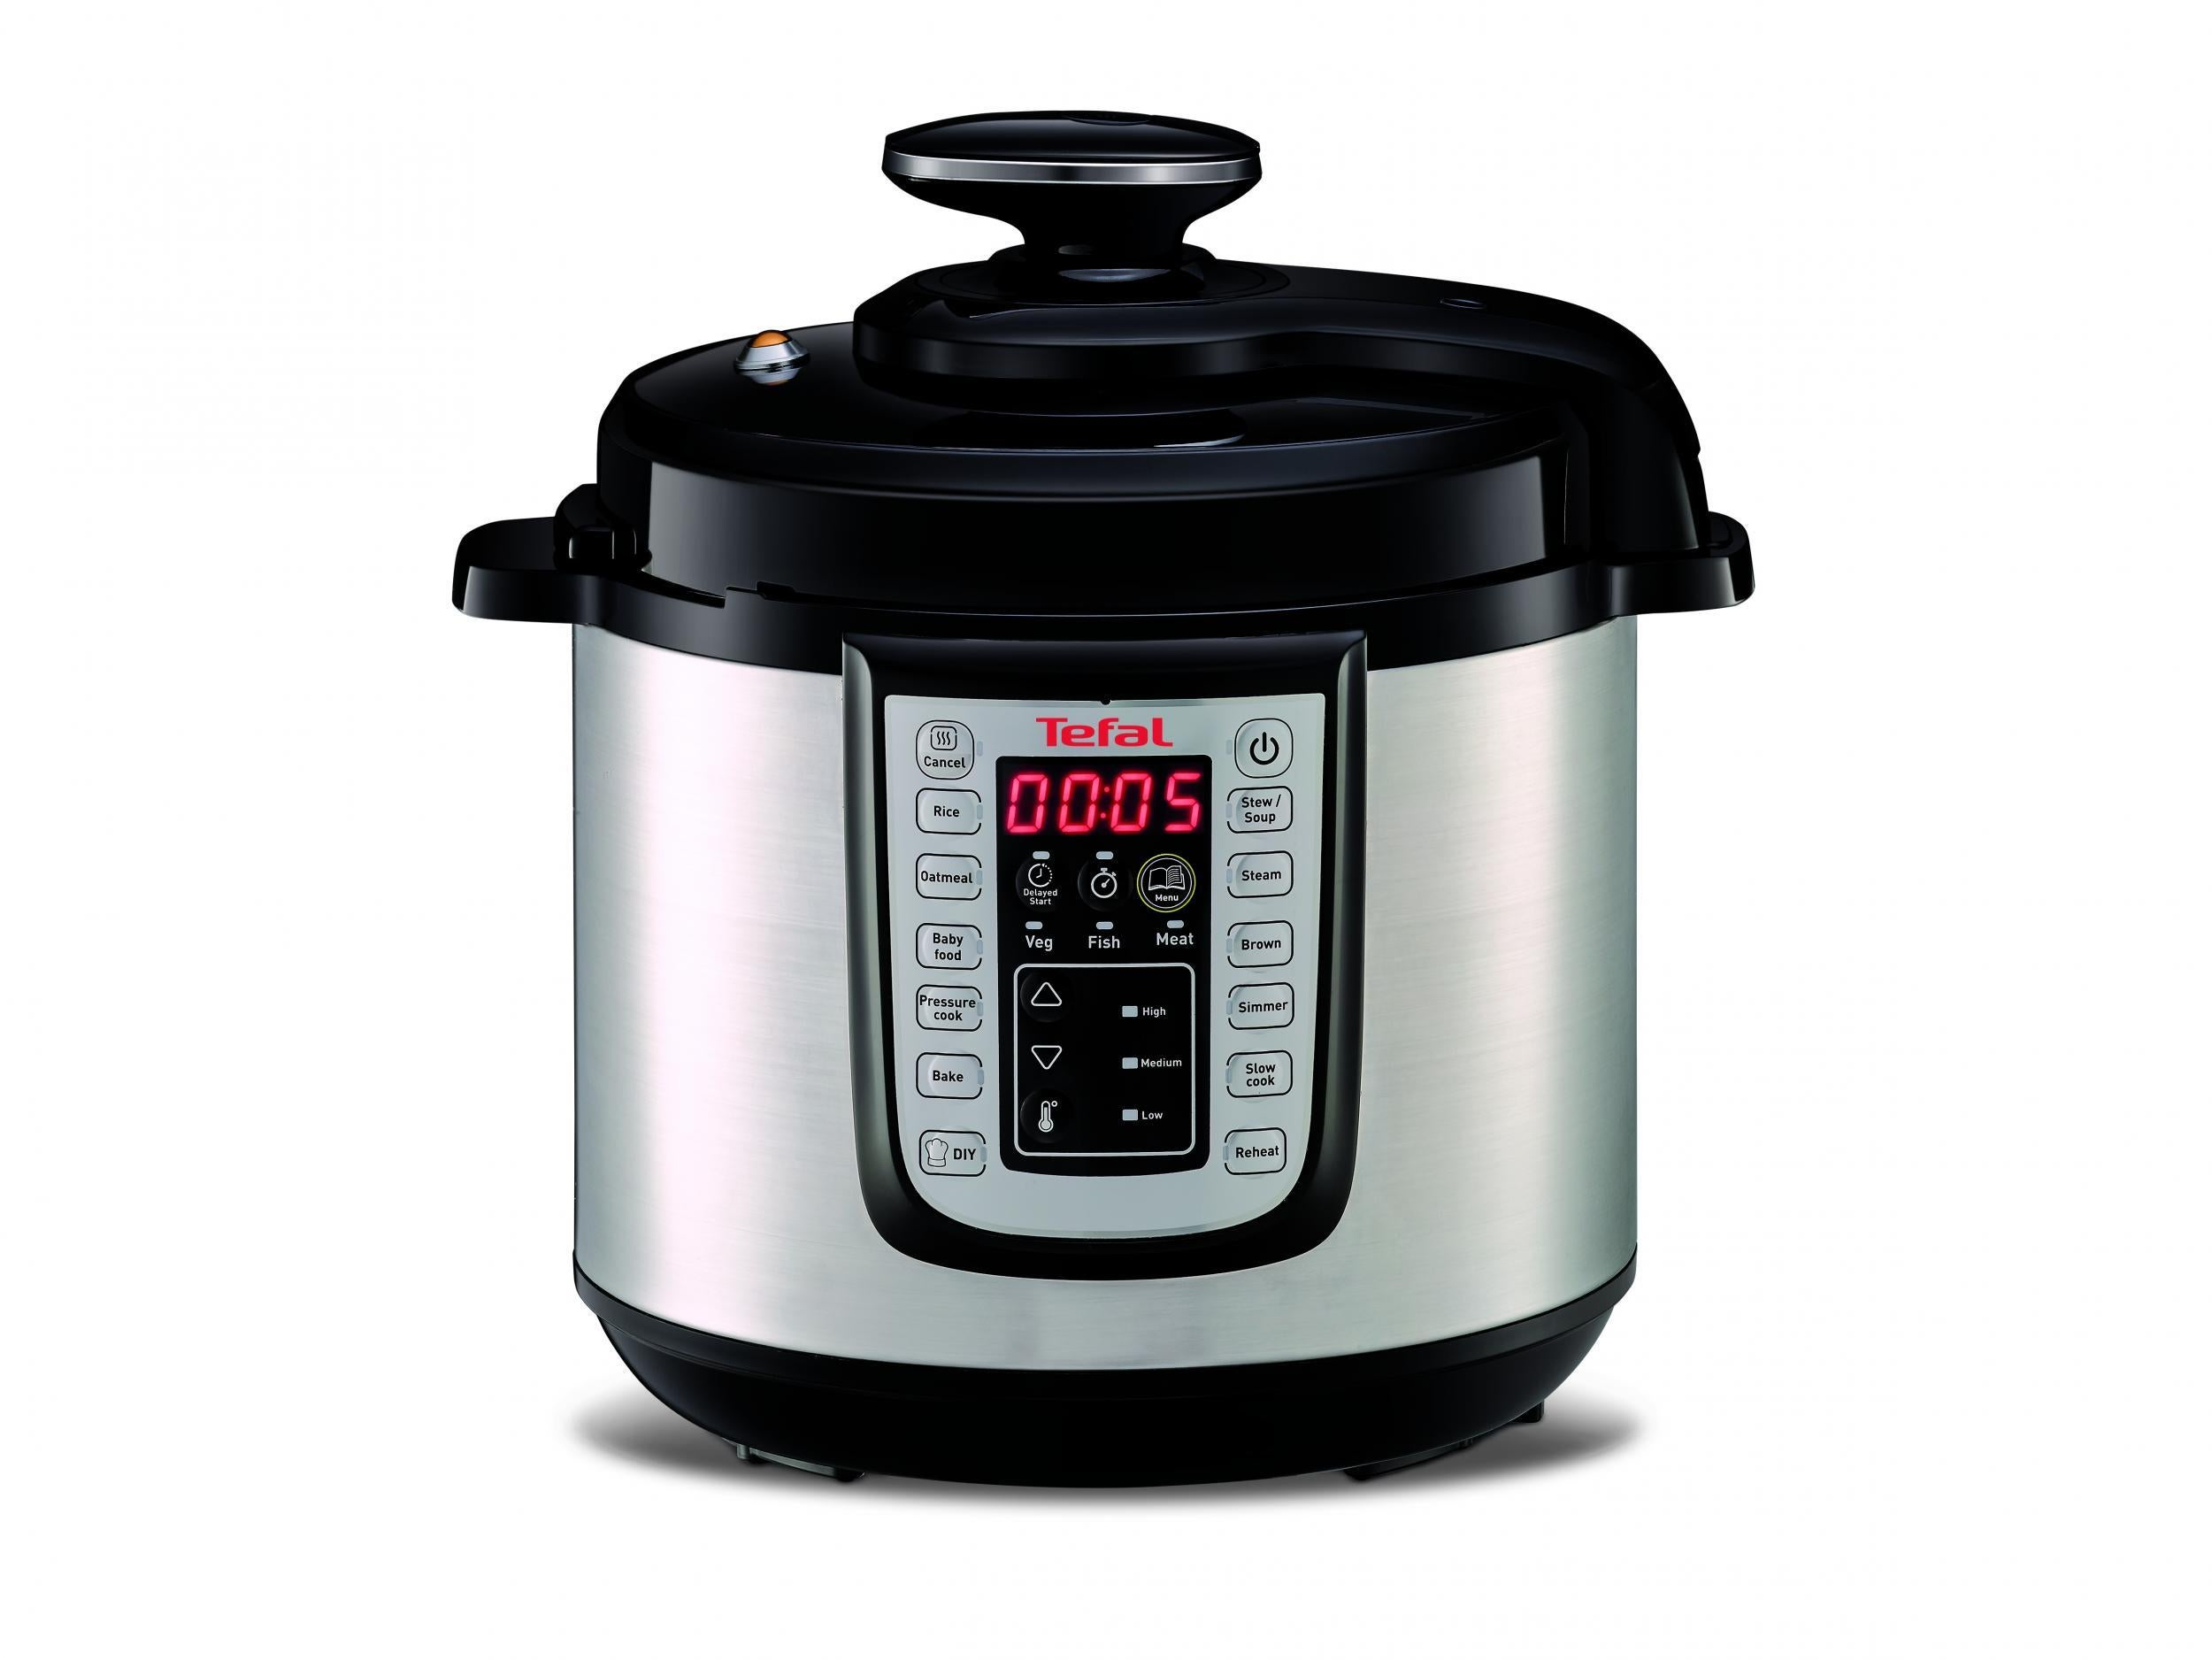 The choice of multicooker 11